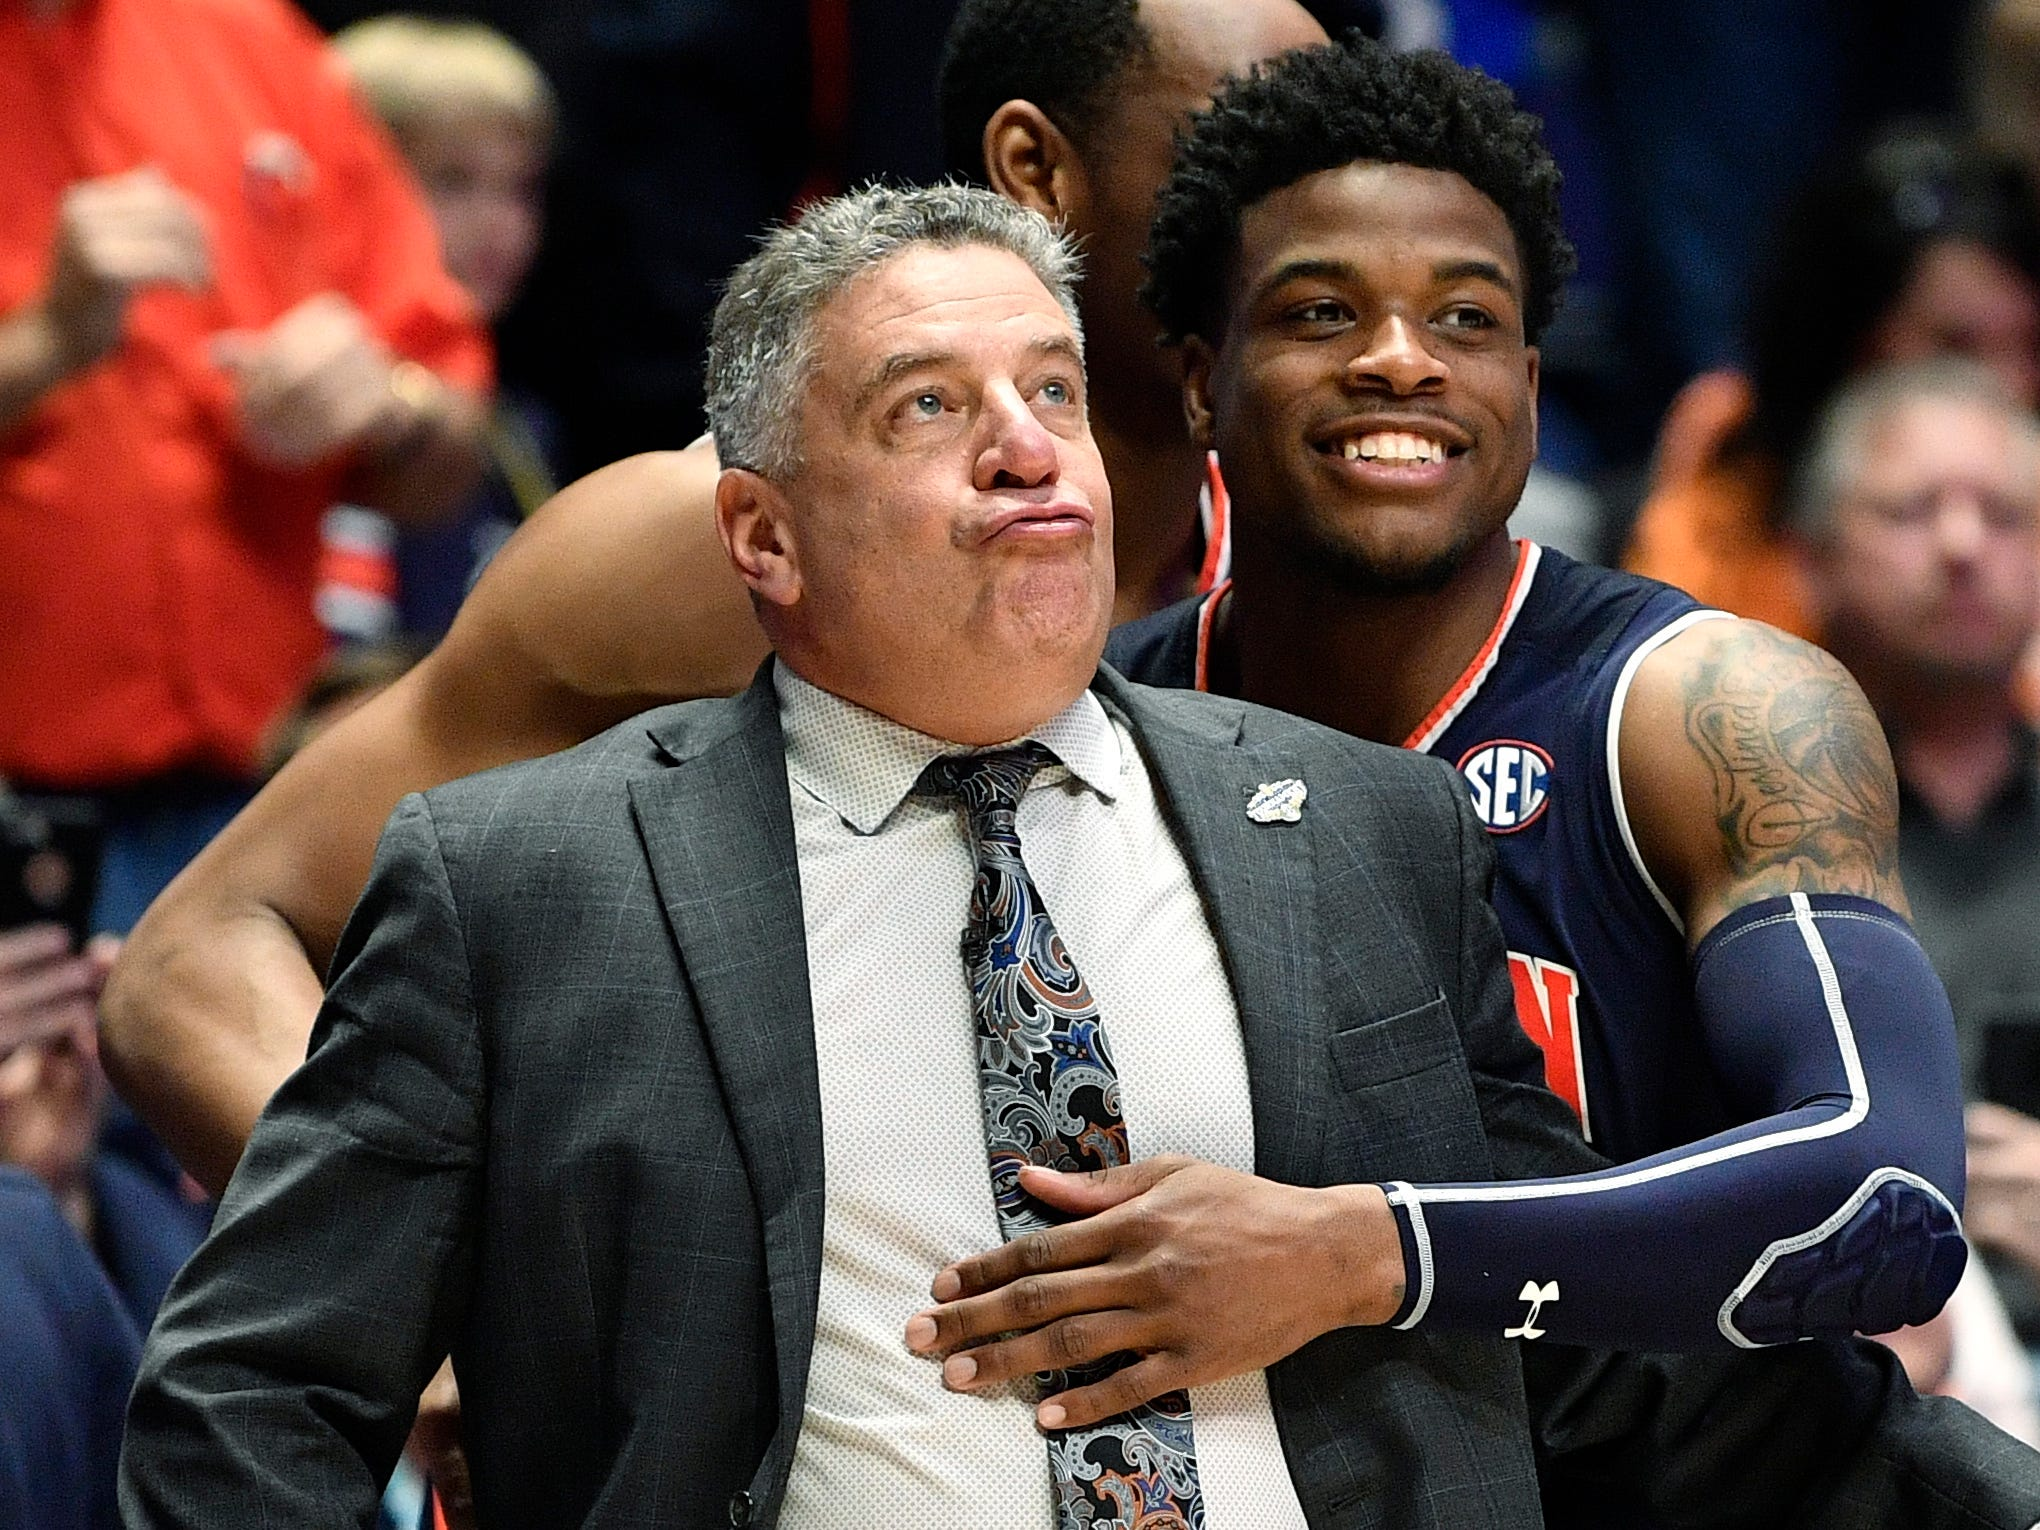 Auburn head coach Bruce Pearl and Auburn guard/forward Malik Dunbar (4) react in the closing minutes of the second half of the team's win over Tennessee in the SEC Men's Basketball Tournament championship game at Bridgestone Arena in Nashville, Tenn., Sunday, March 17, 2019.